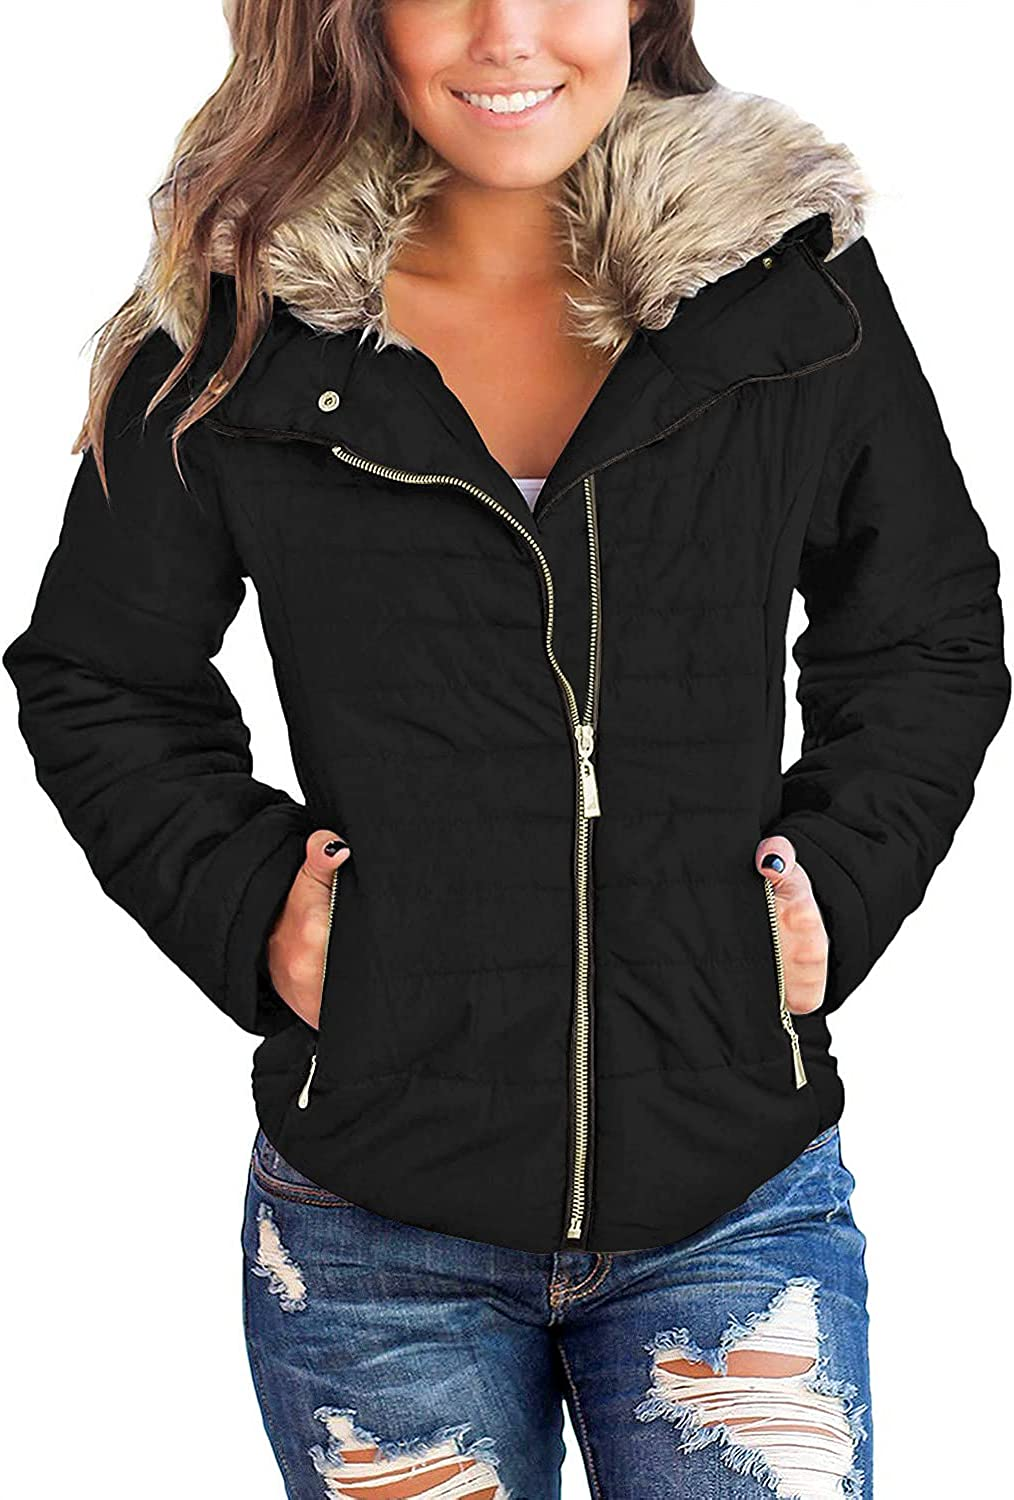 luvamia Women Casual Warm Winter Faux Fur Quilted Parka Lapel Zip Jacket Puffer Coat